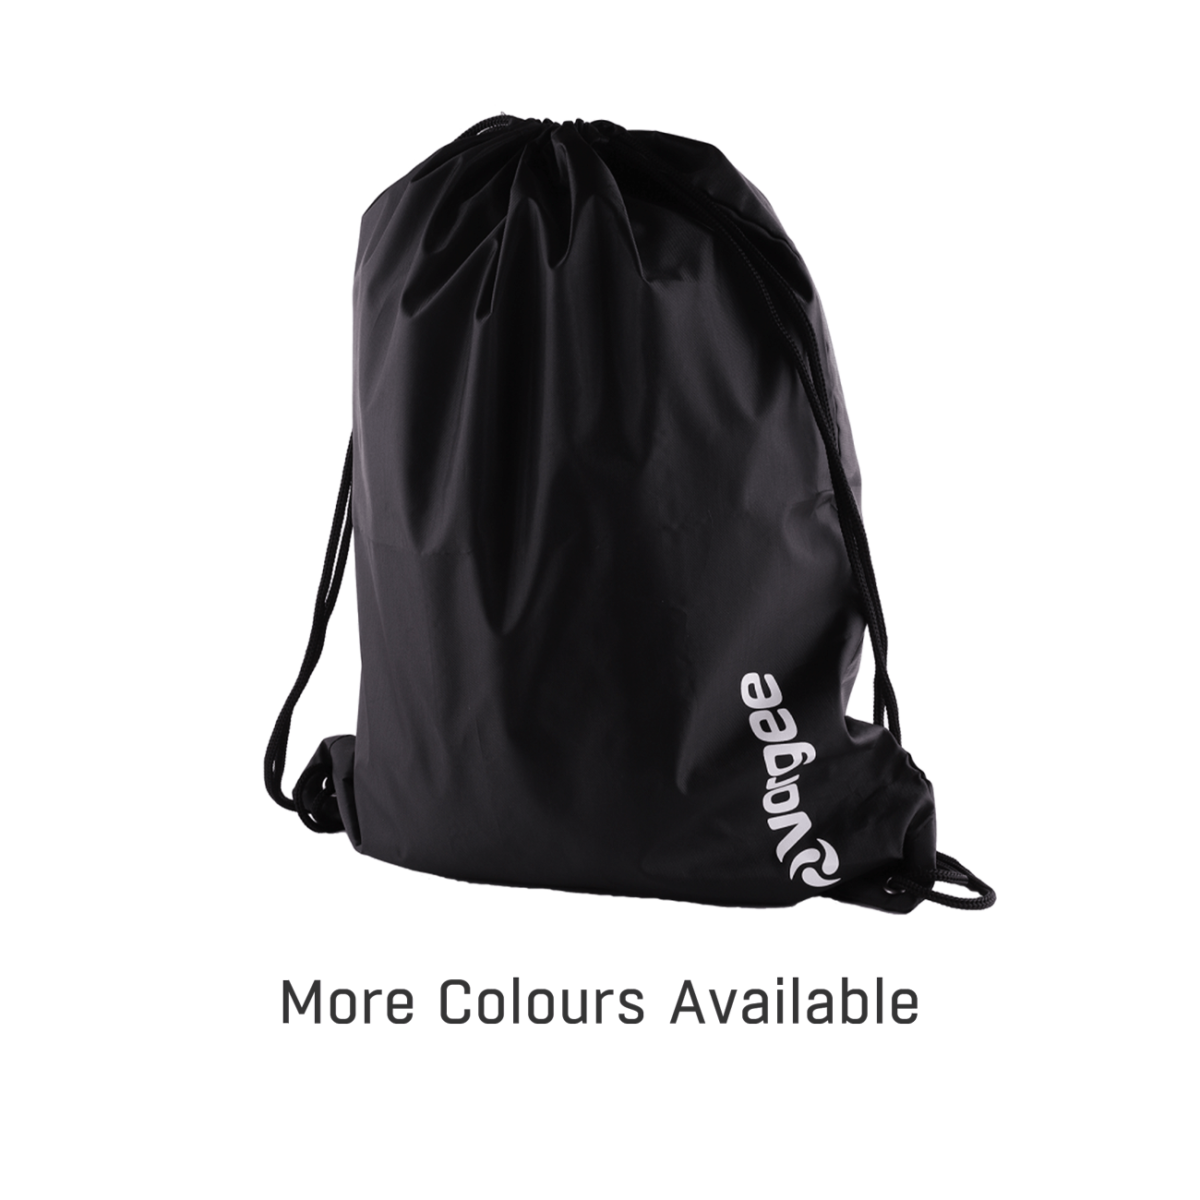 Ruck-Sack-Cover